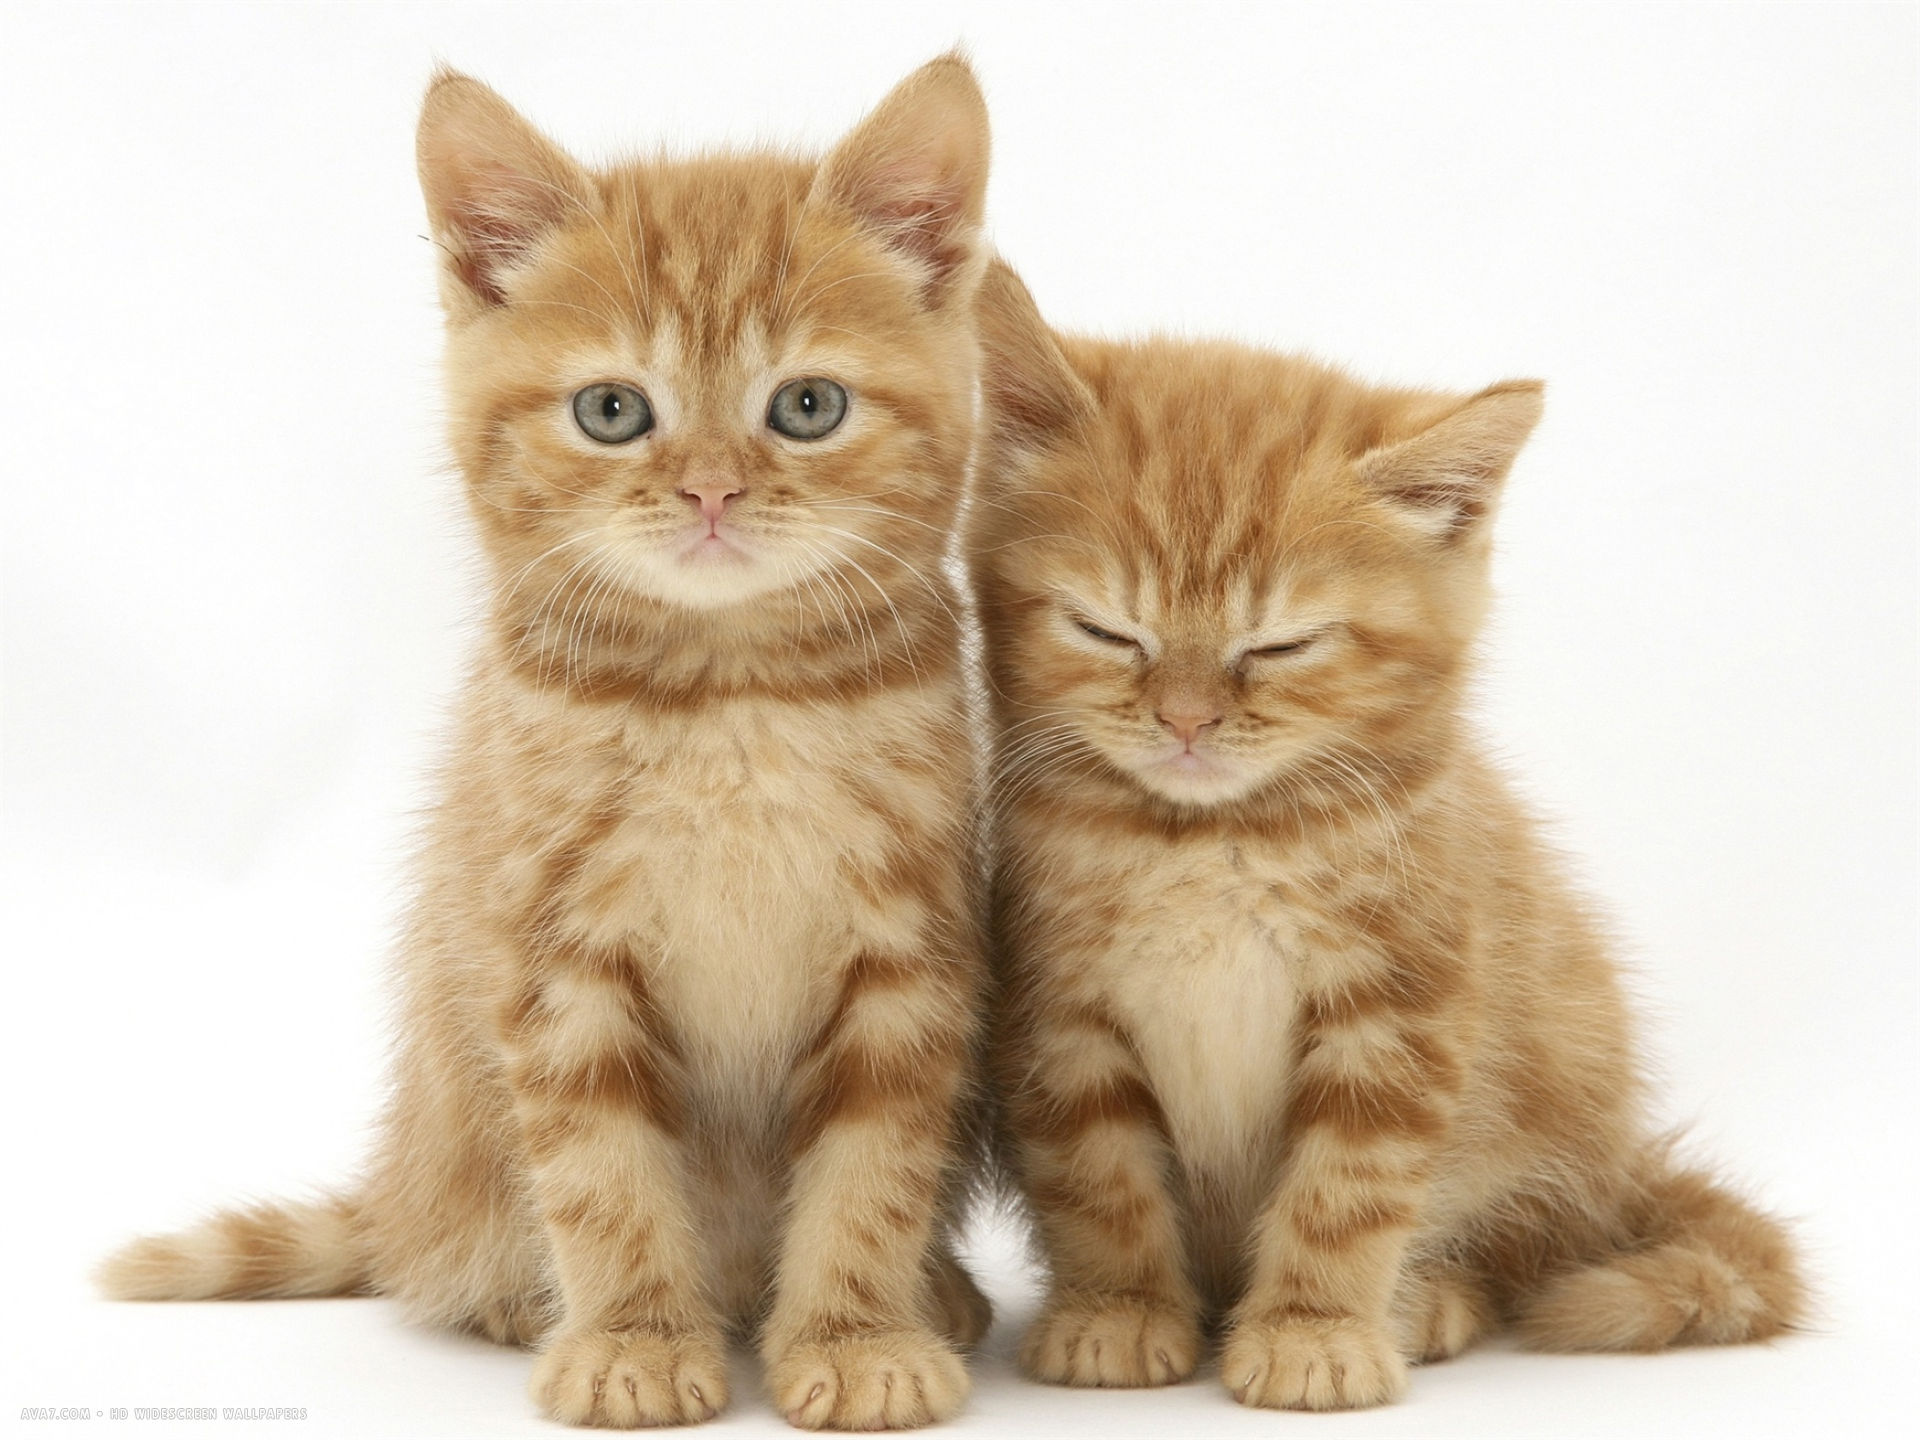 Two Ginger Domestic Kittens Felis Catus Domestic Cat Hd